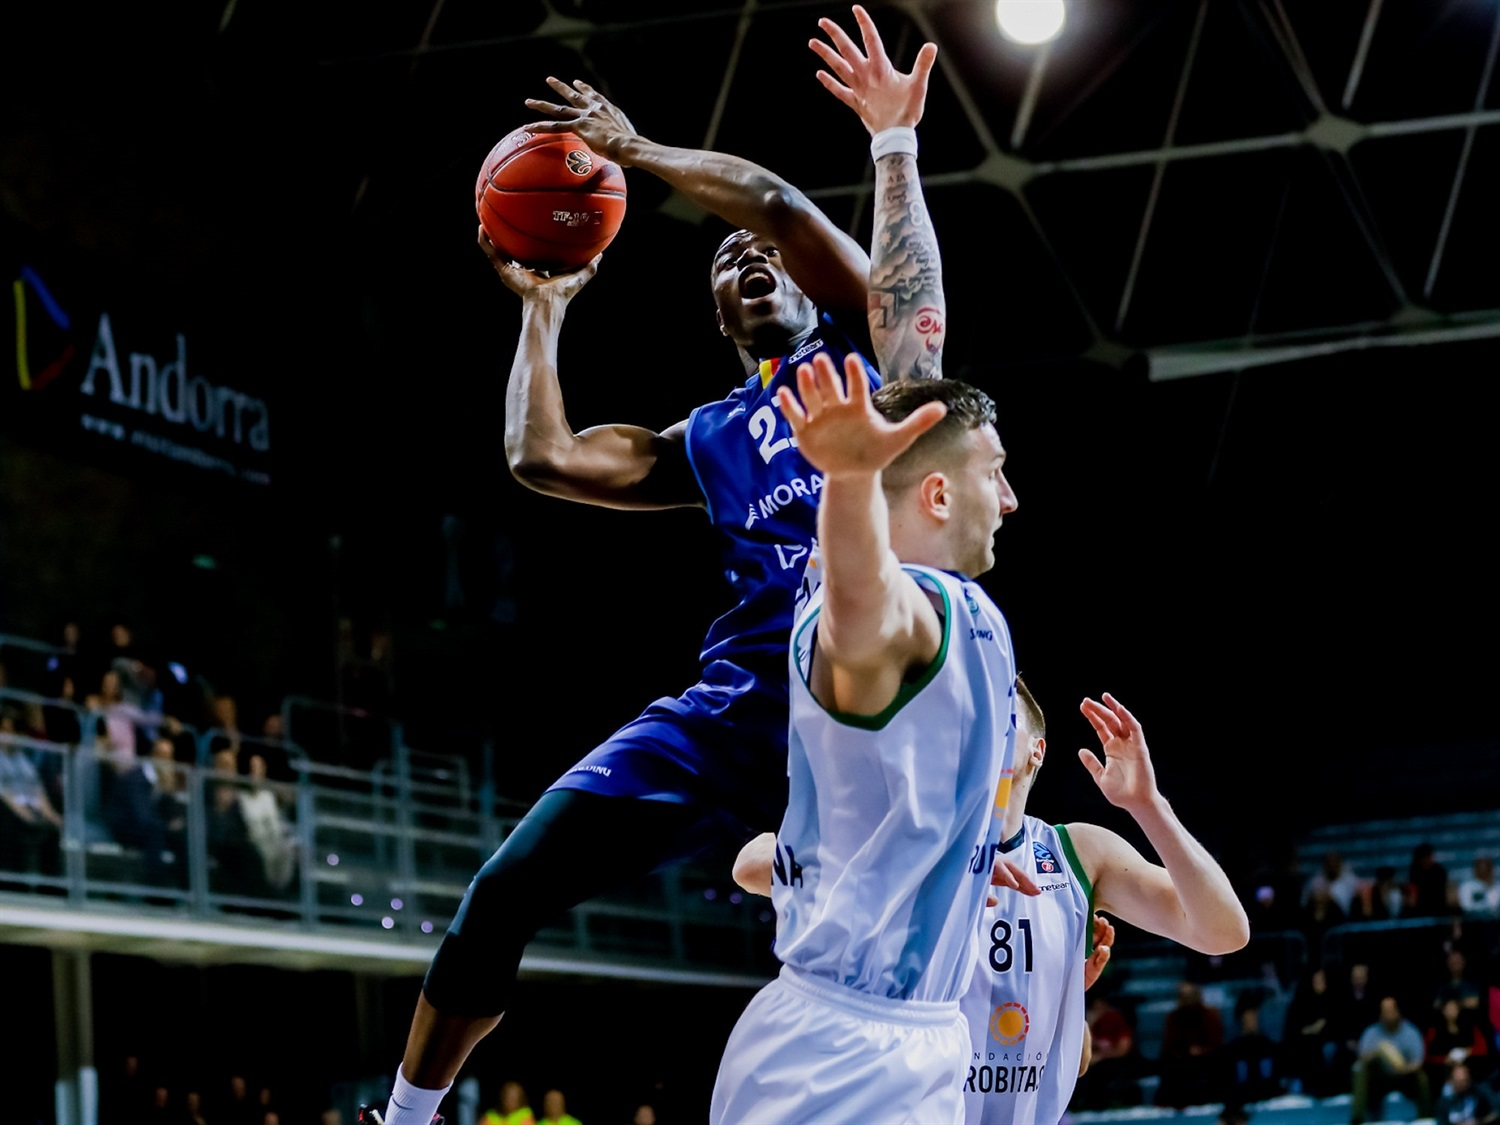 Moussa Diagne - MoraBanc Andorra  (Photo Martin Imatge) - EC19